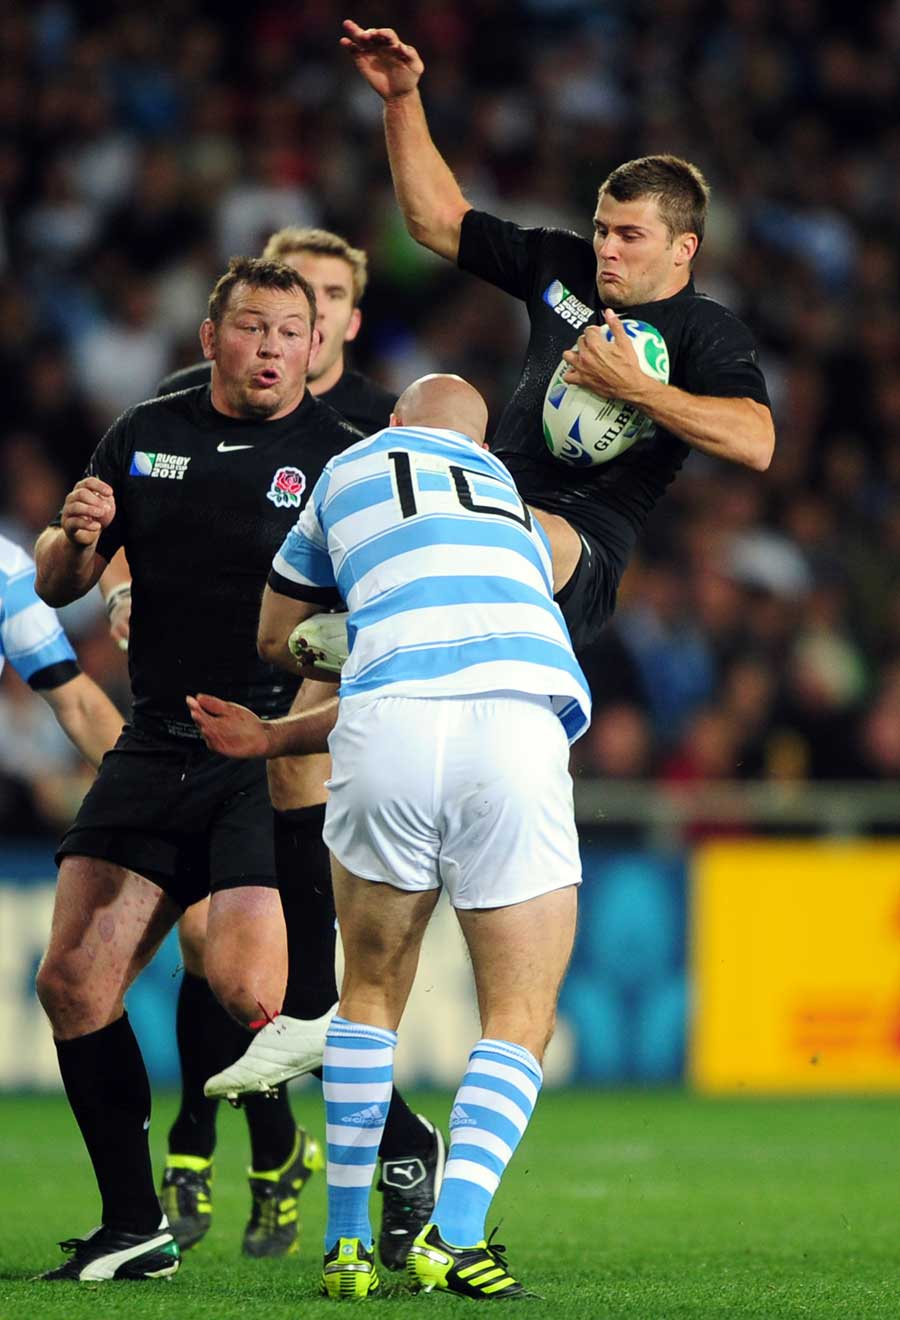 Argentina's Felipe Contepomi catches Richard Wigglesworth in the air